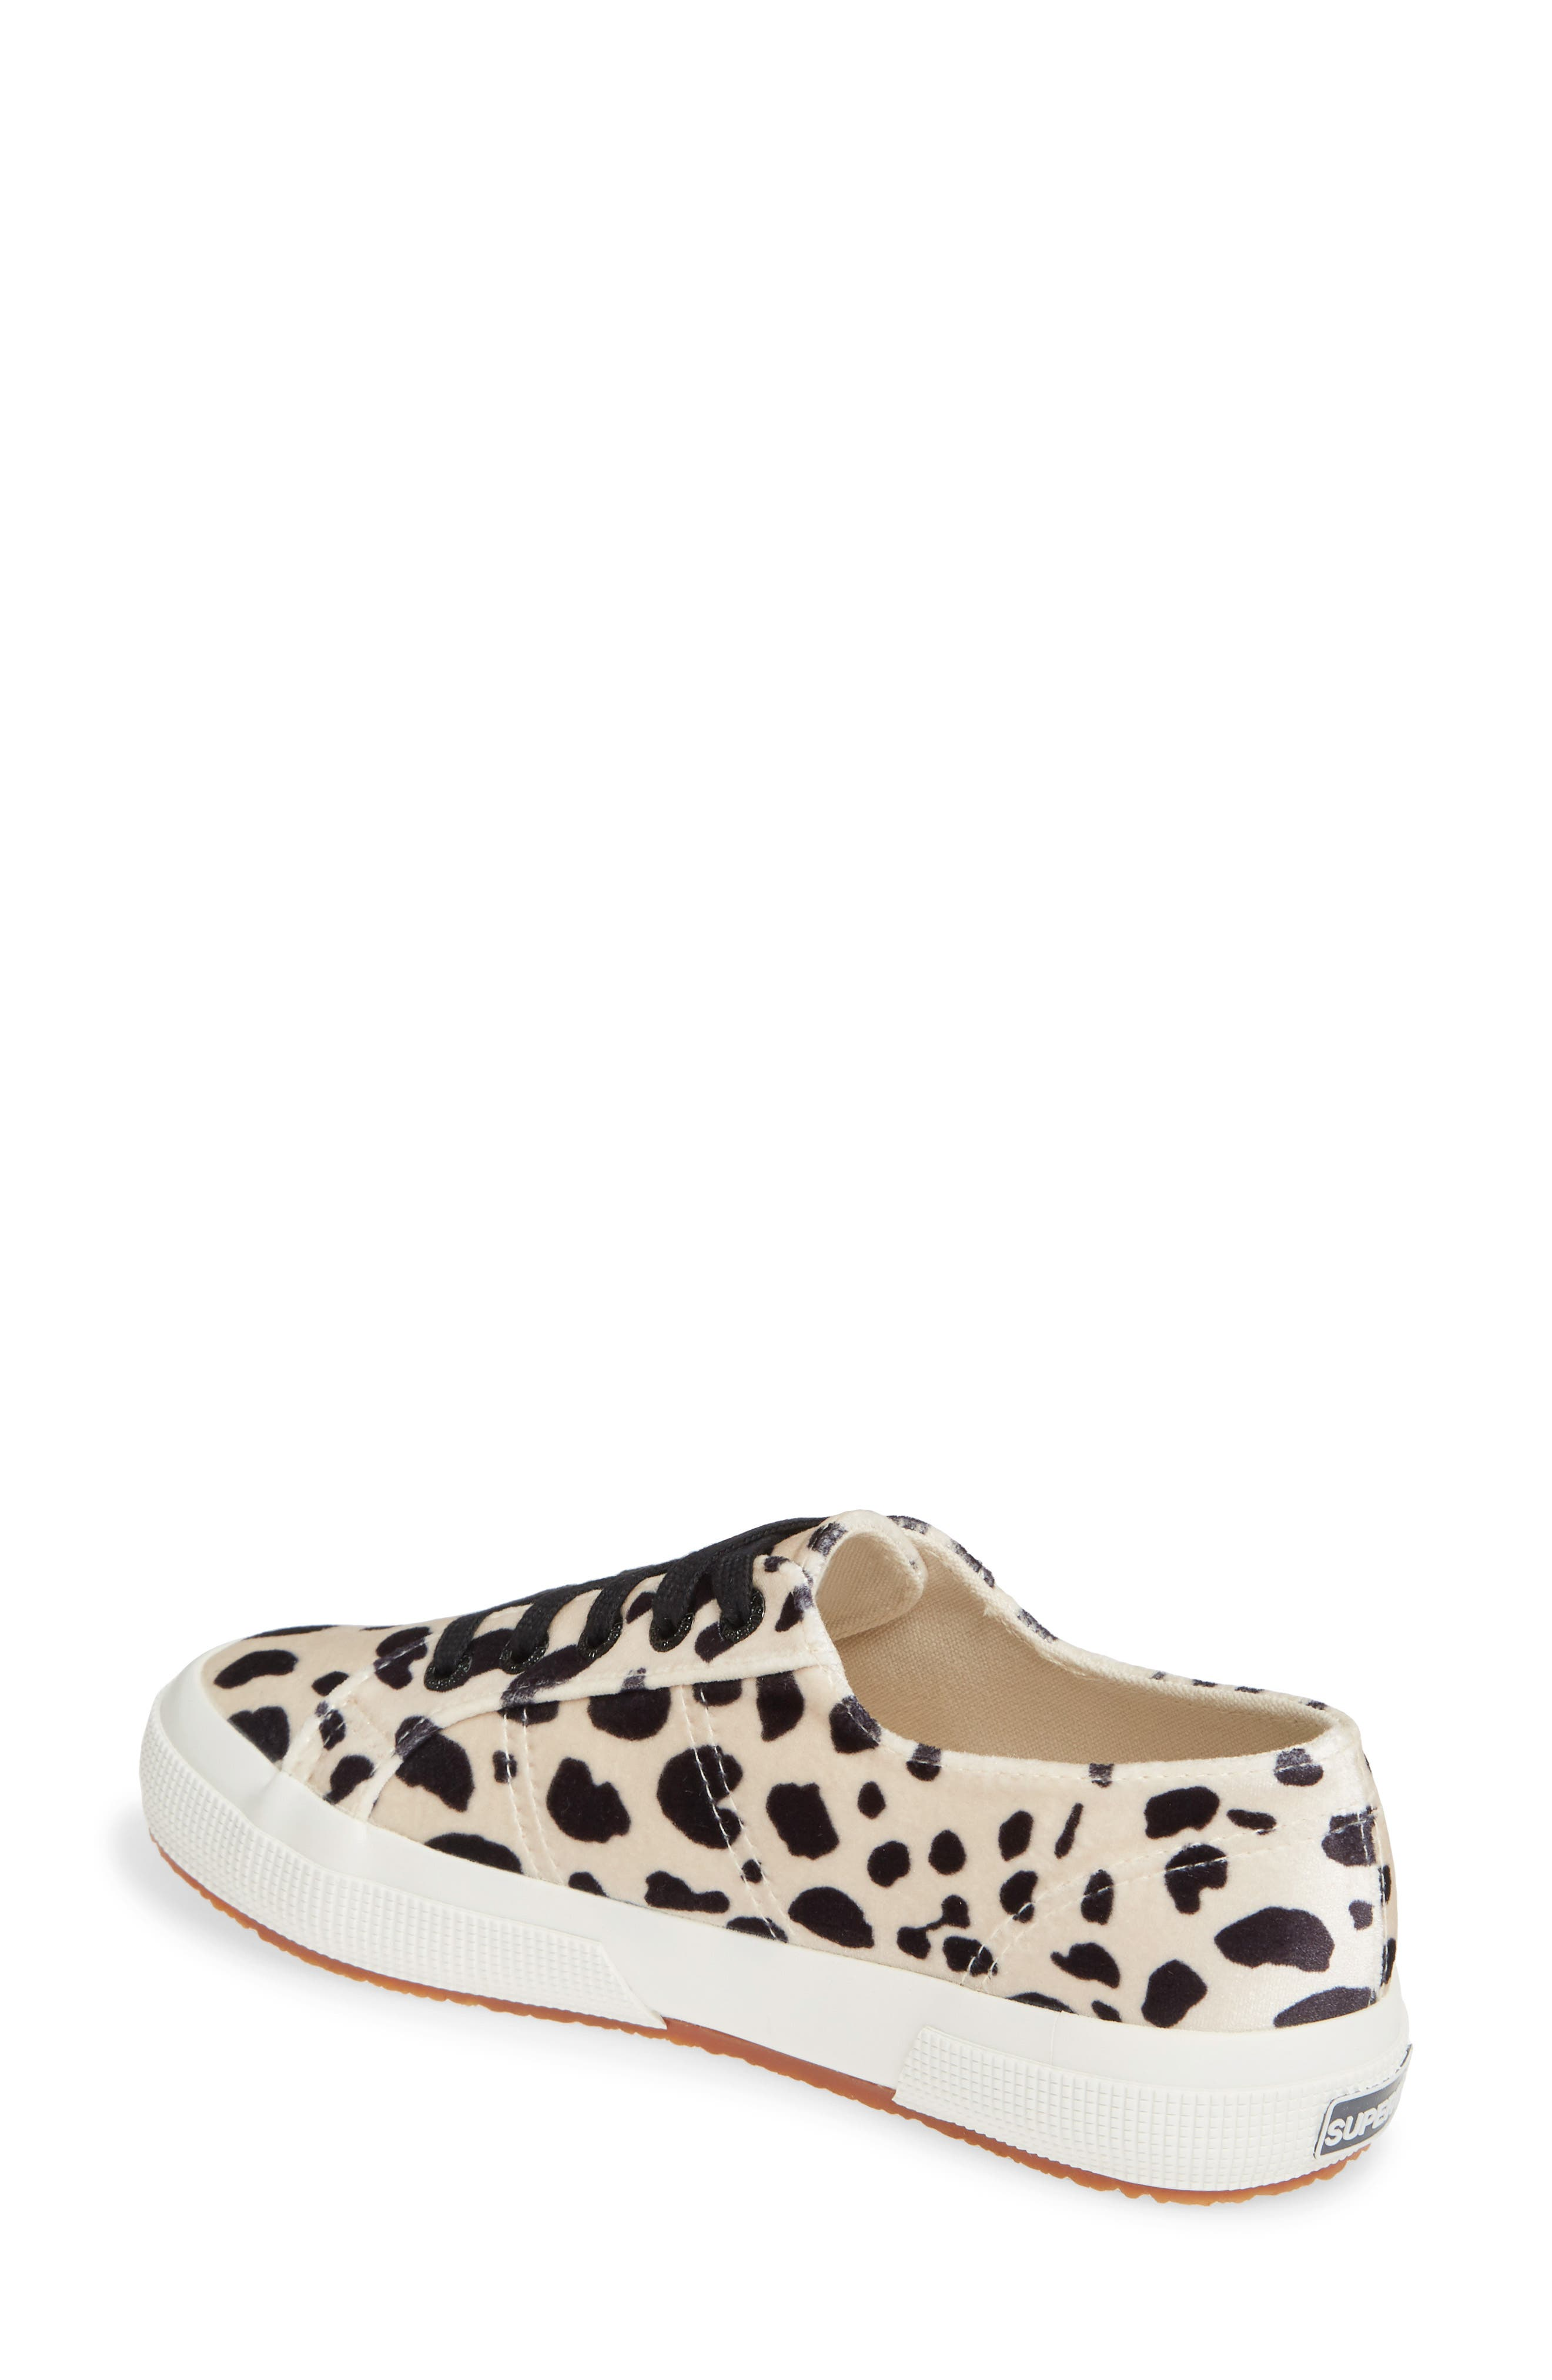 8cecadd99f5f Superga Shoes   Sneakers